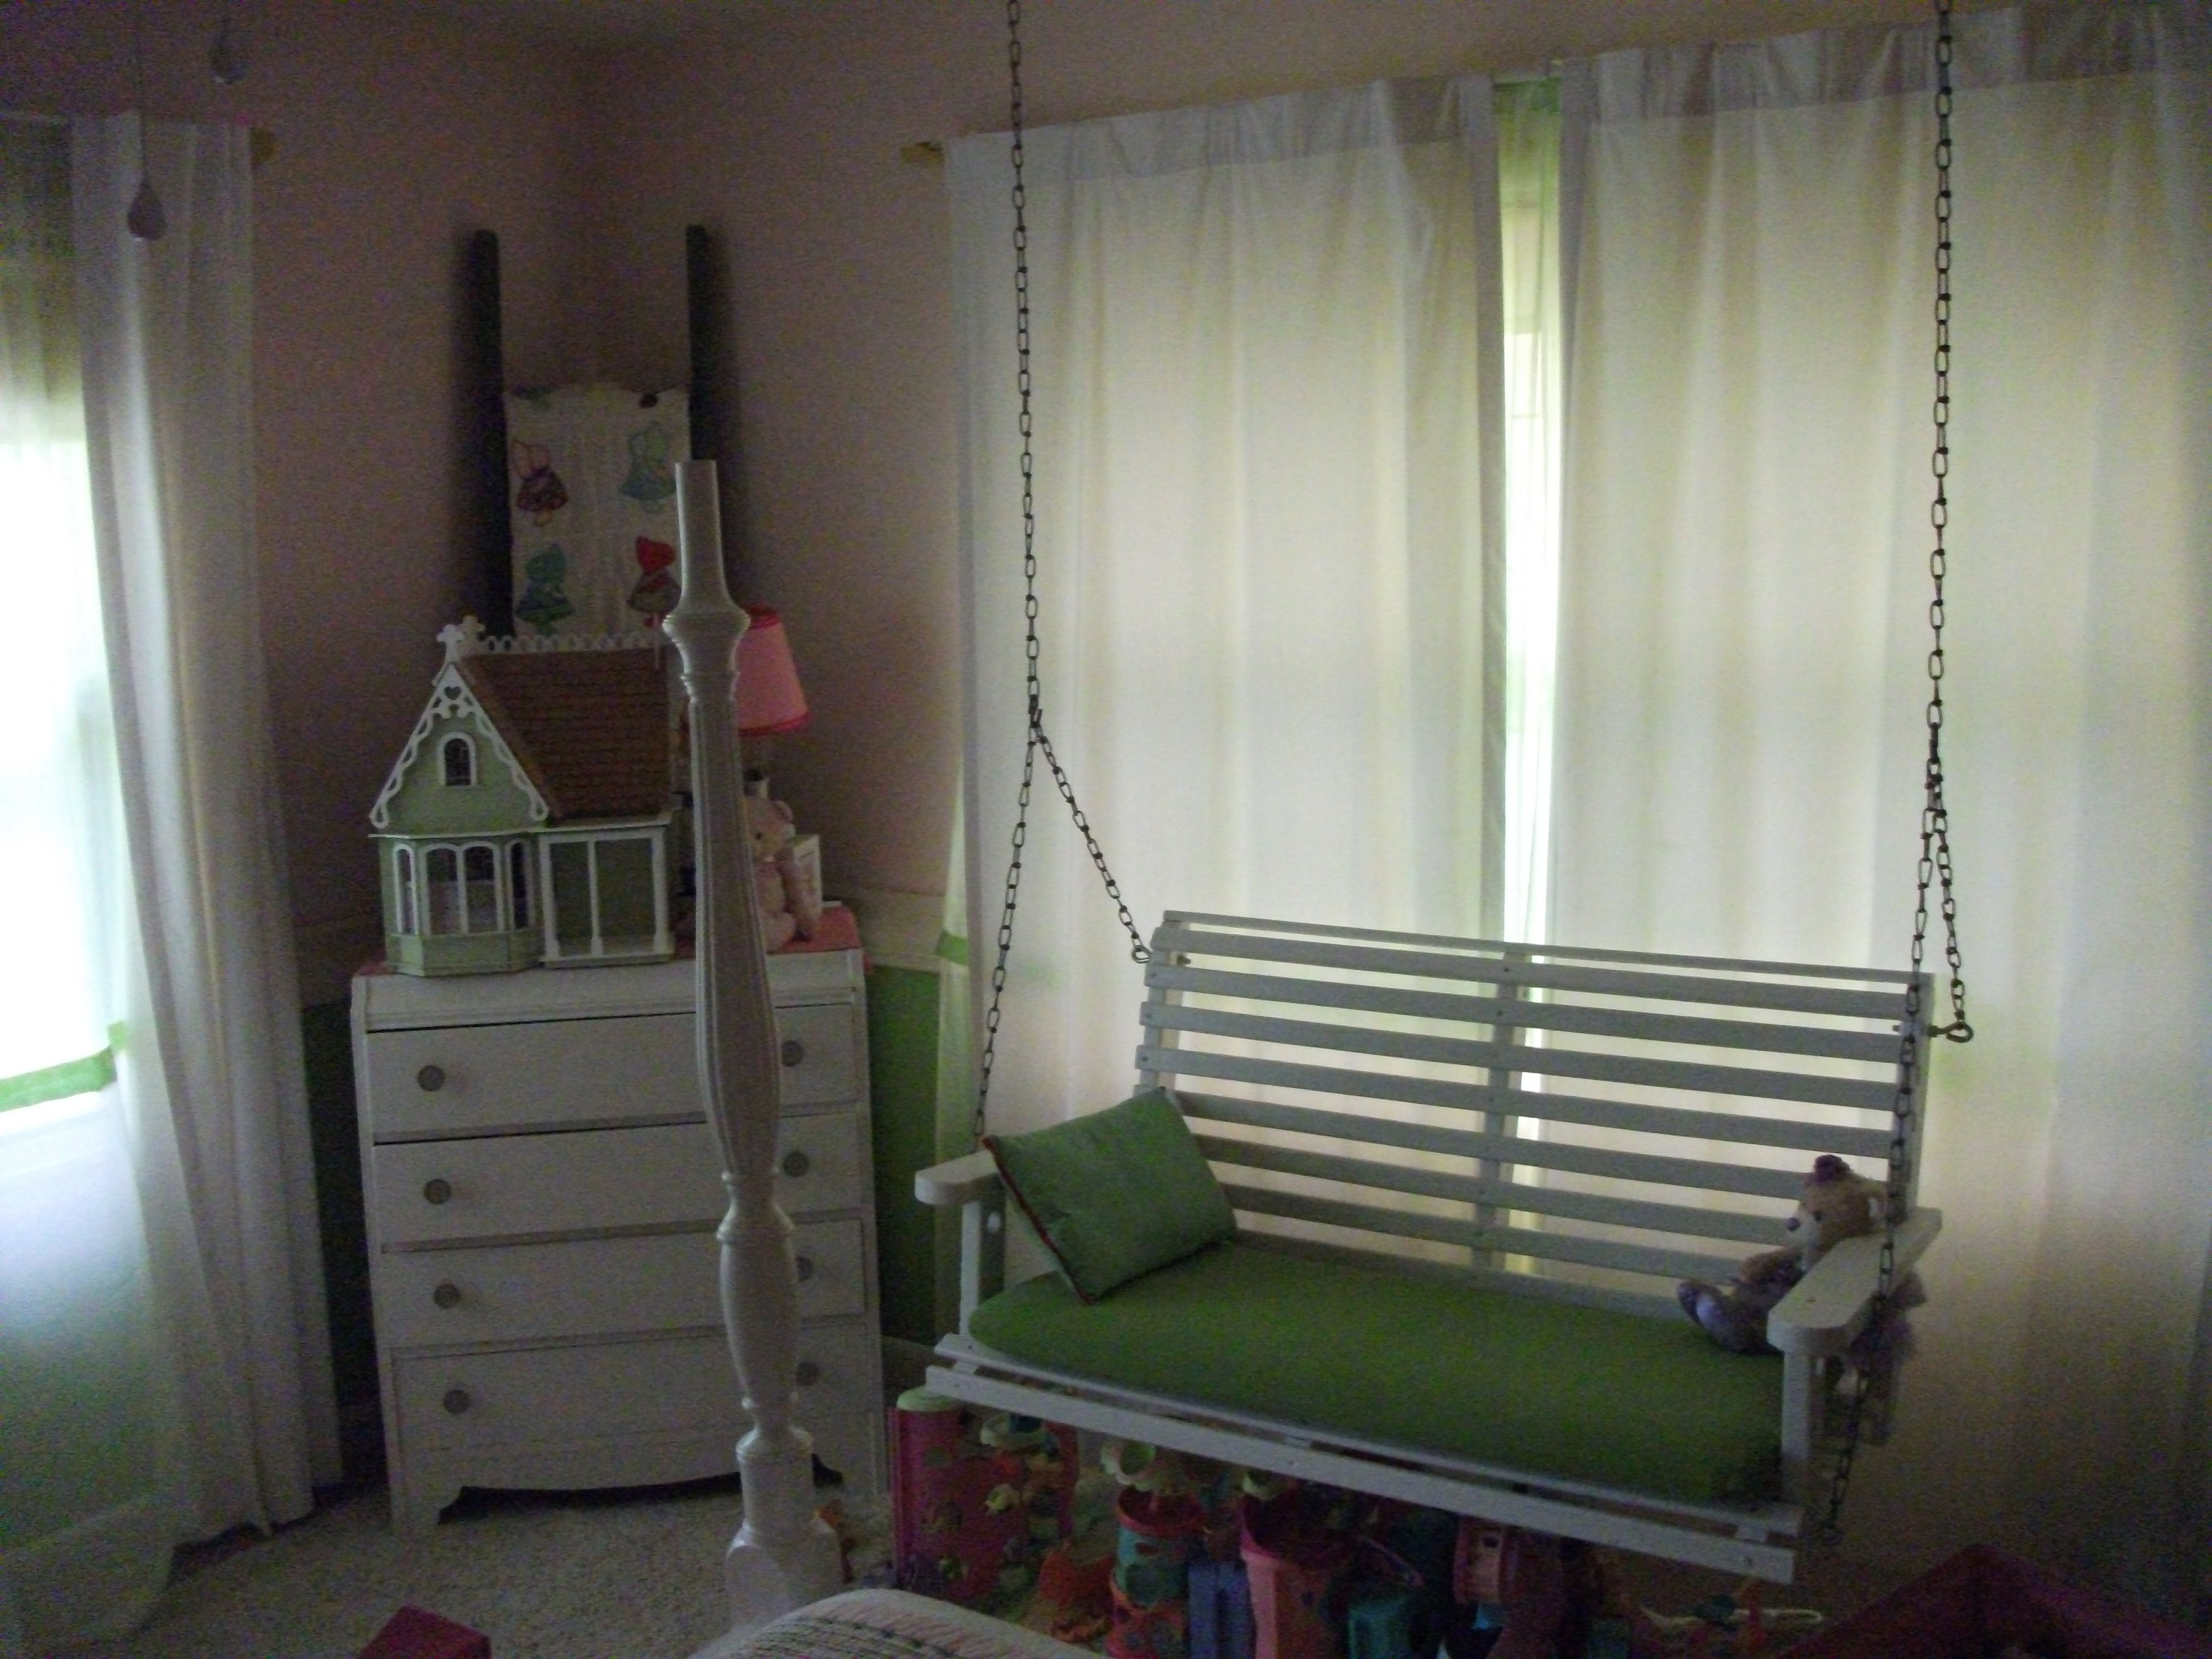 I Hung This Old Porch Swing I Found Cheap At A Fleamarket In My Daughter S Room For A Different Kind Of Reading Area Porch Swing Dream Home Design House Styles